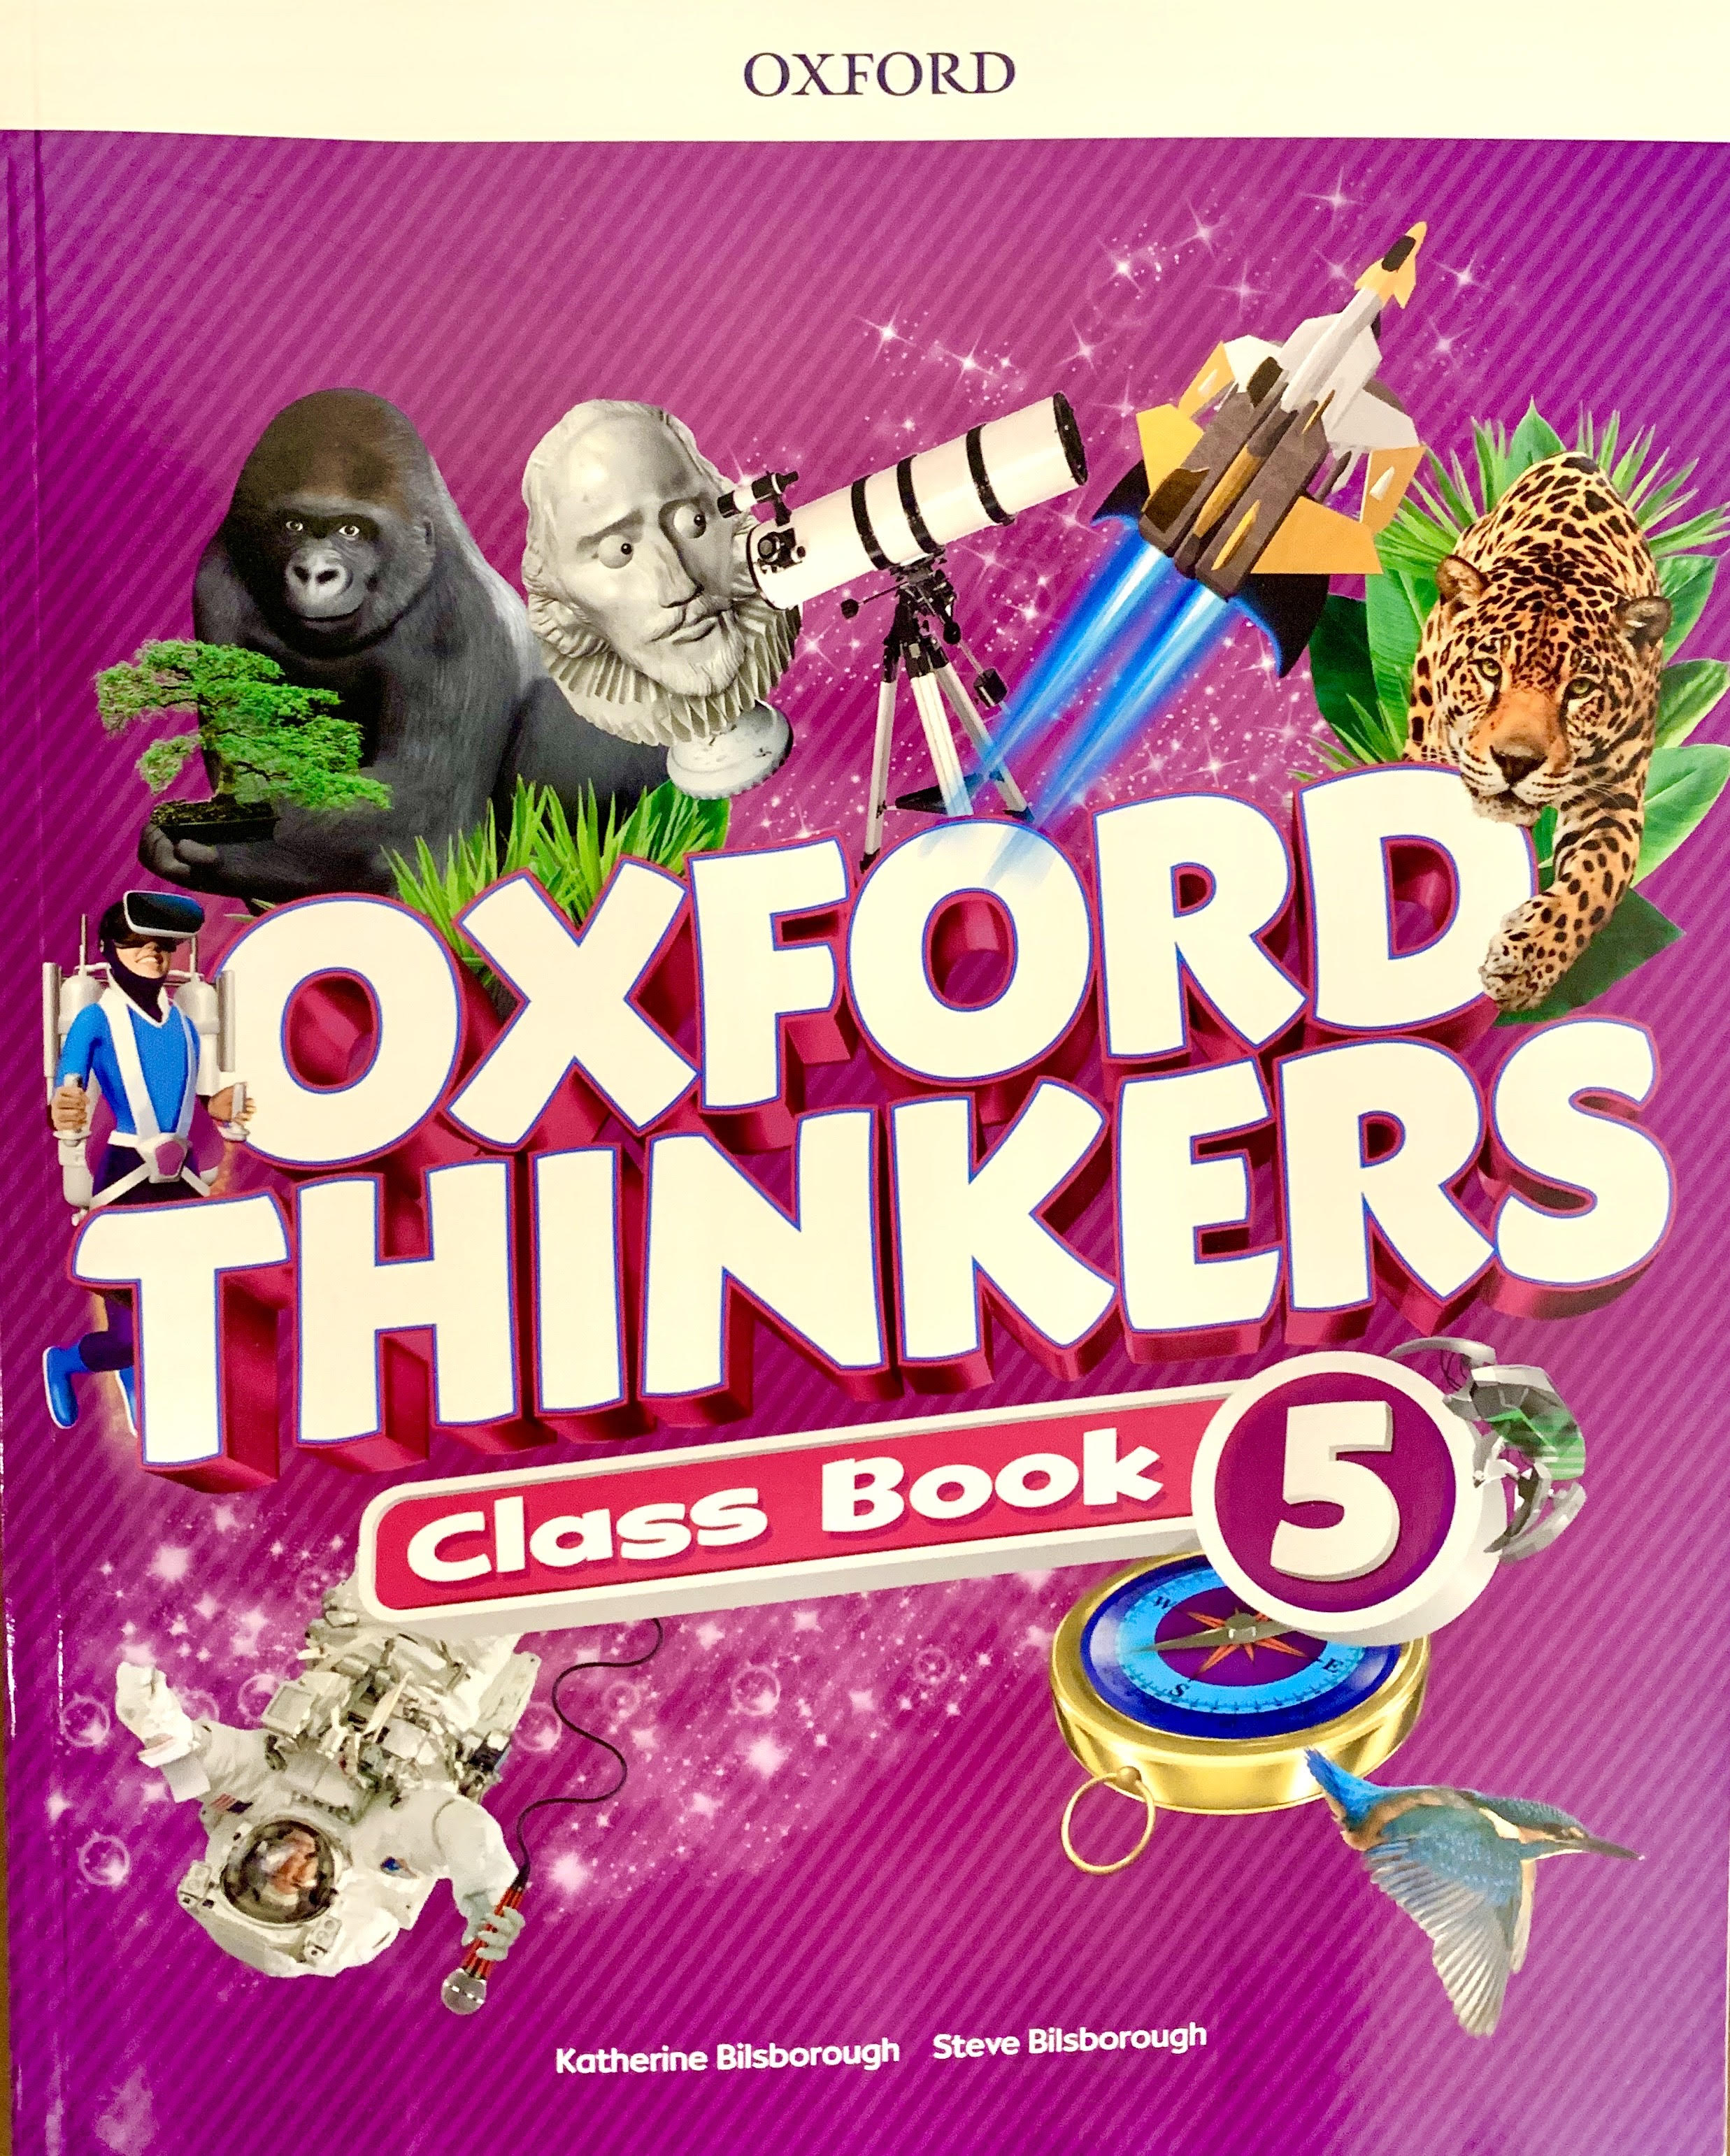 Oxford Thinkers class 5